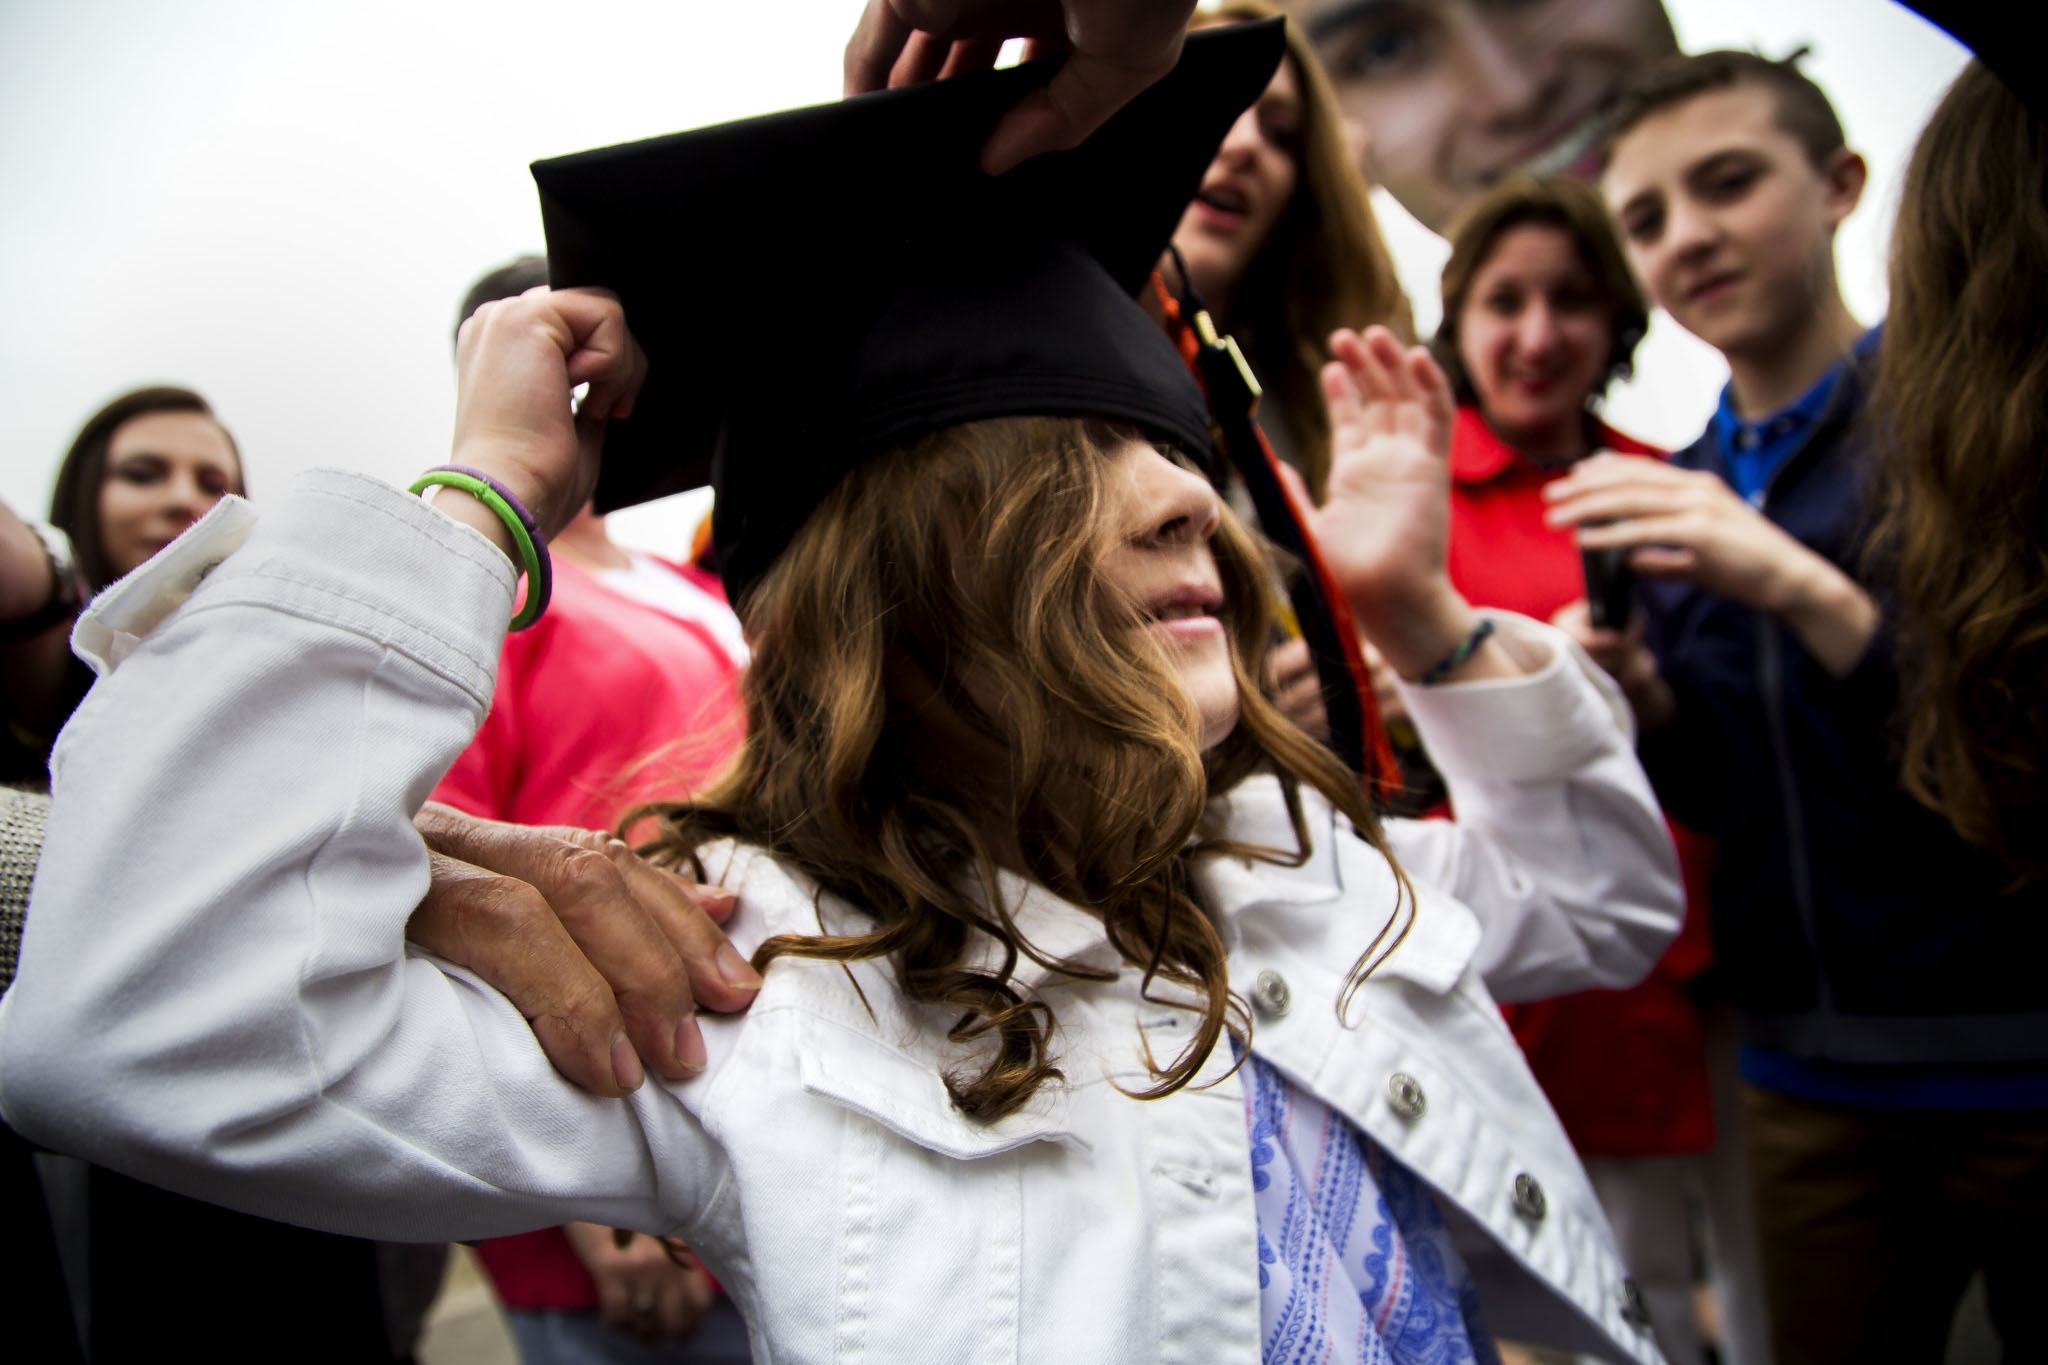 A photograph of a child having a graduation cap put on her.